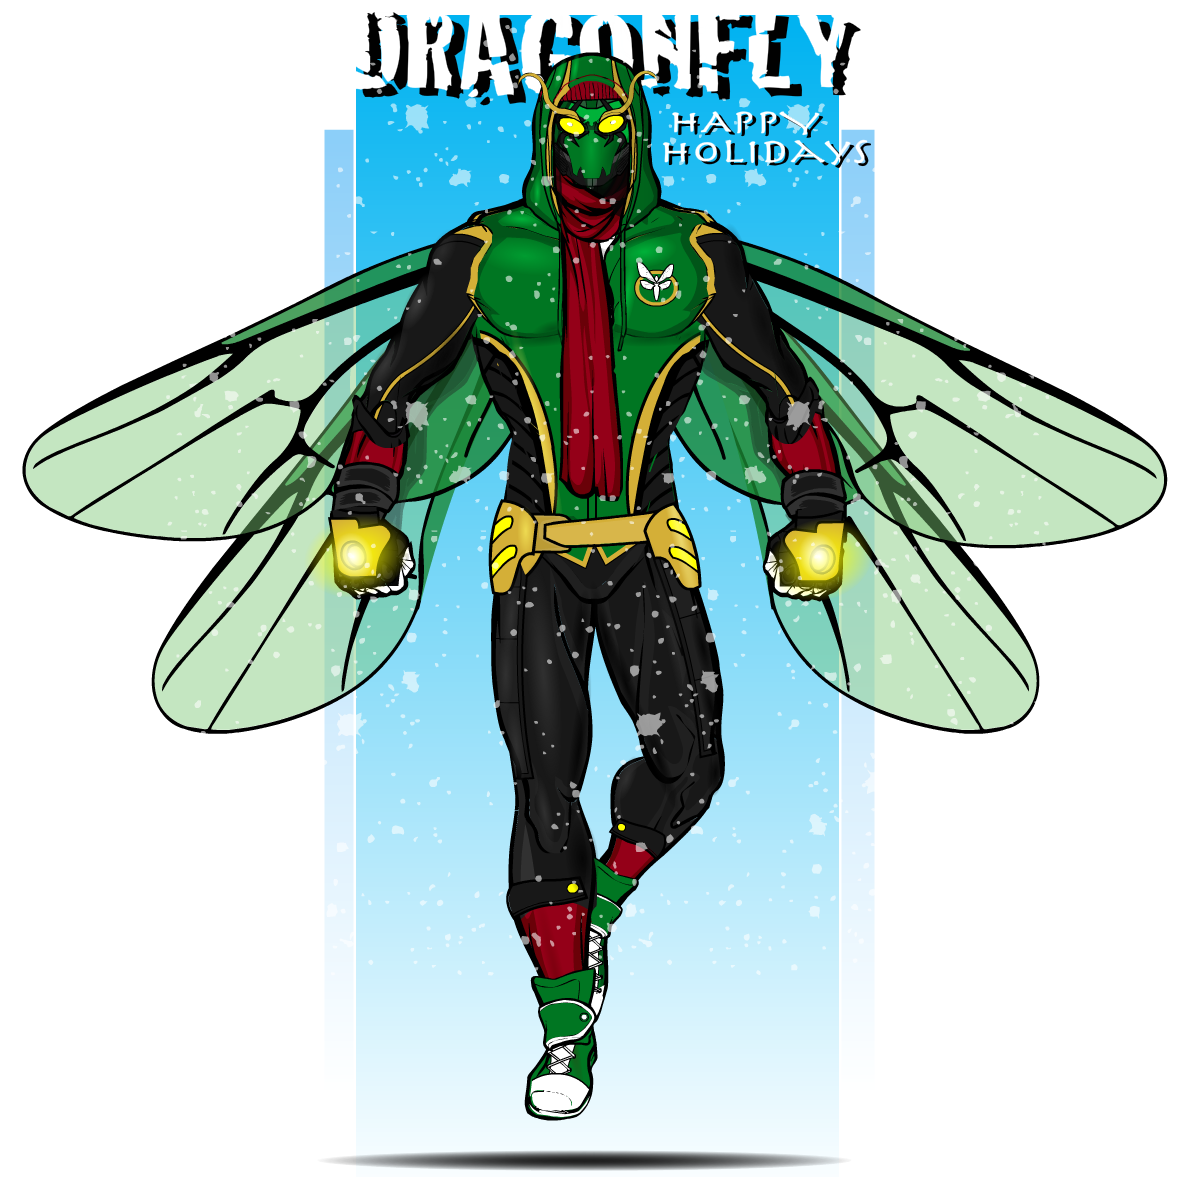 """Have a happy holiday season everyone!!"" - Dragonfly"